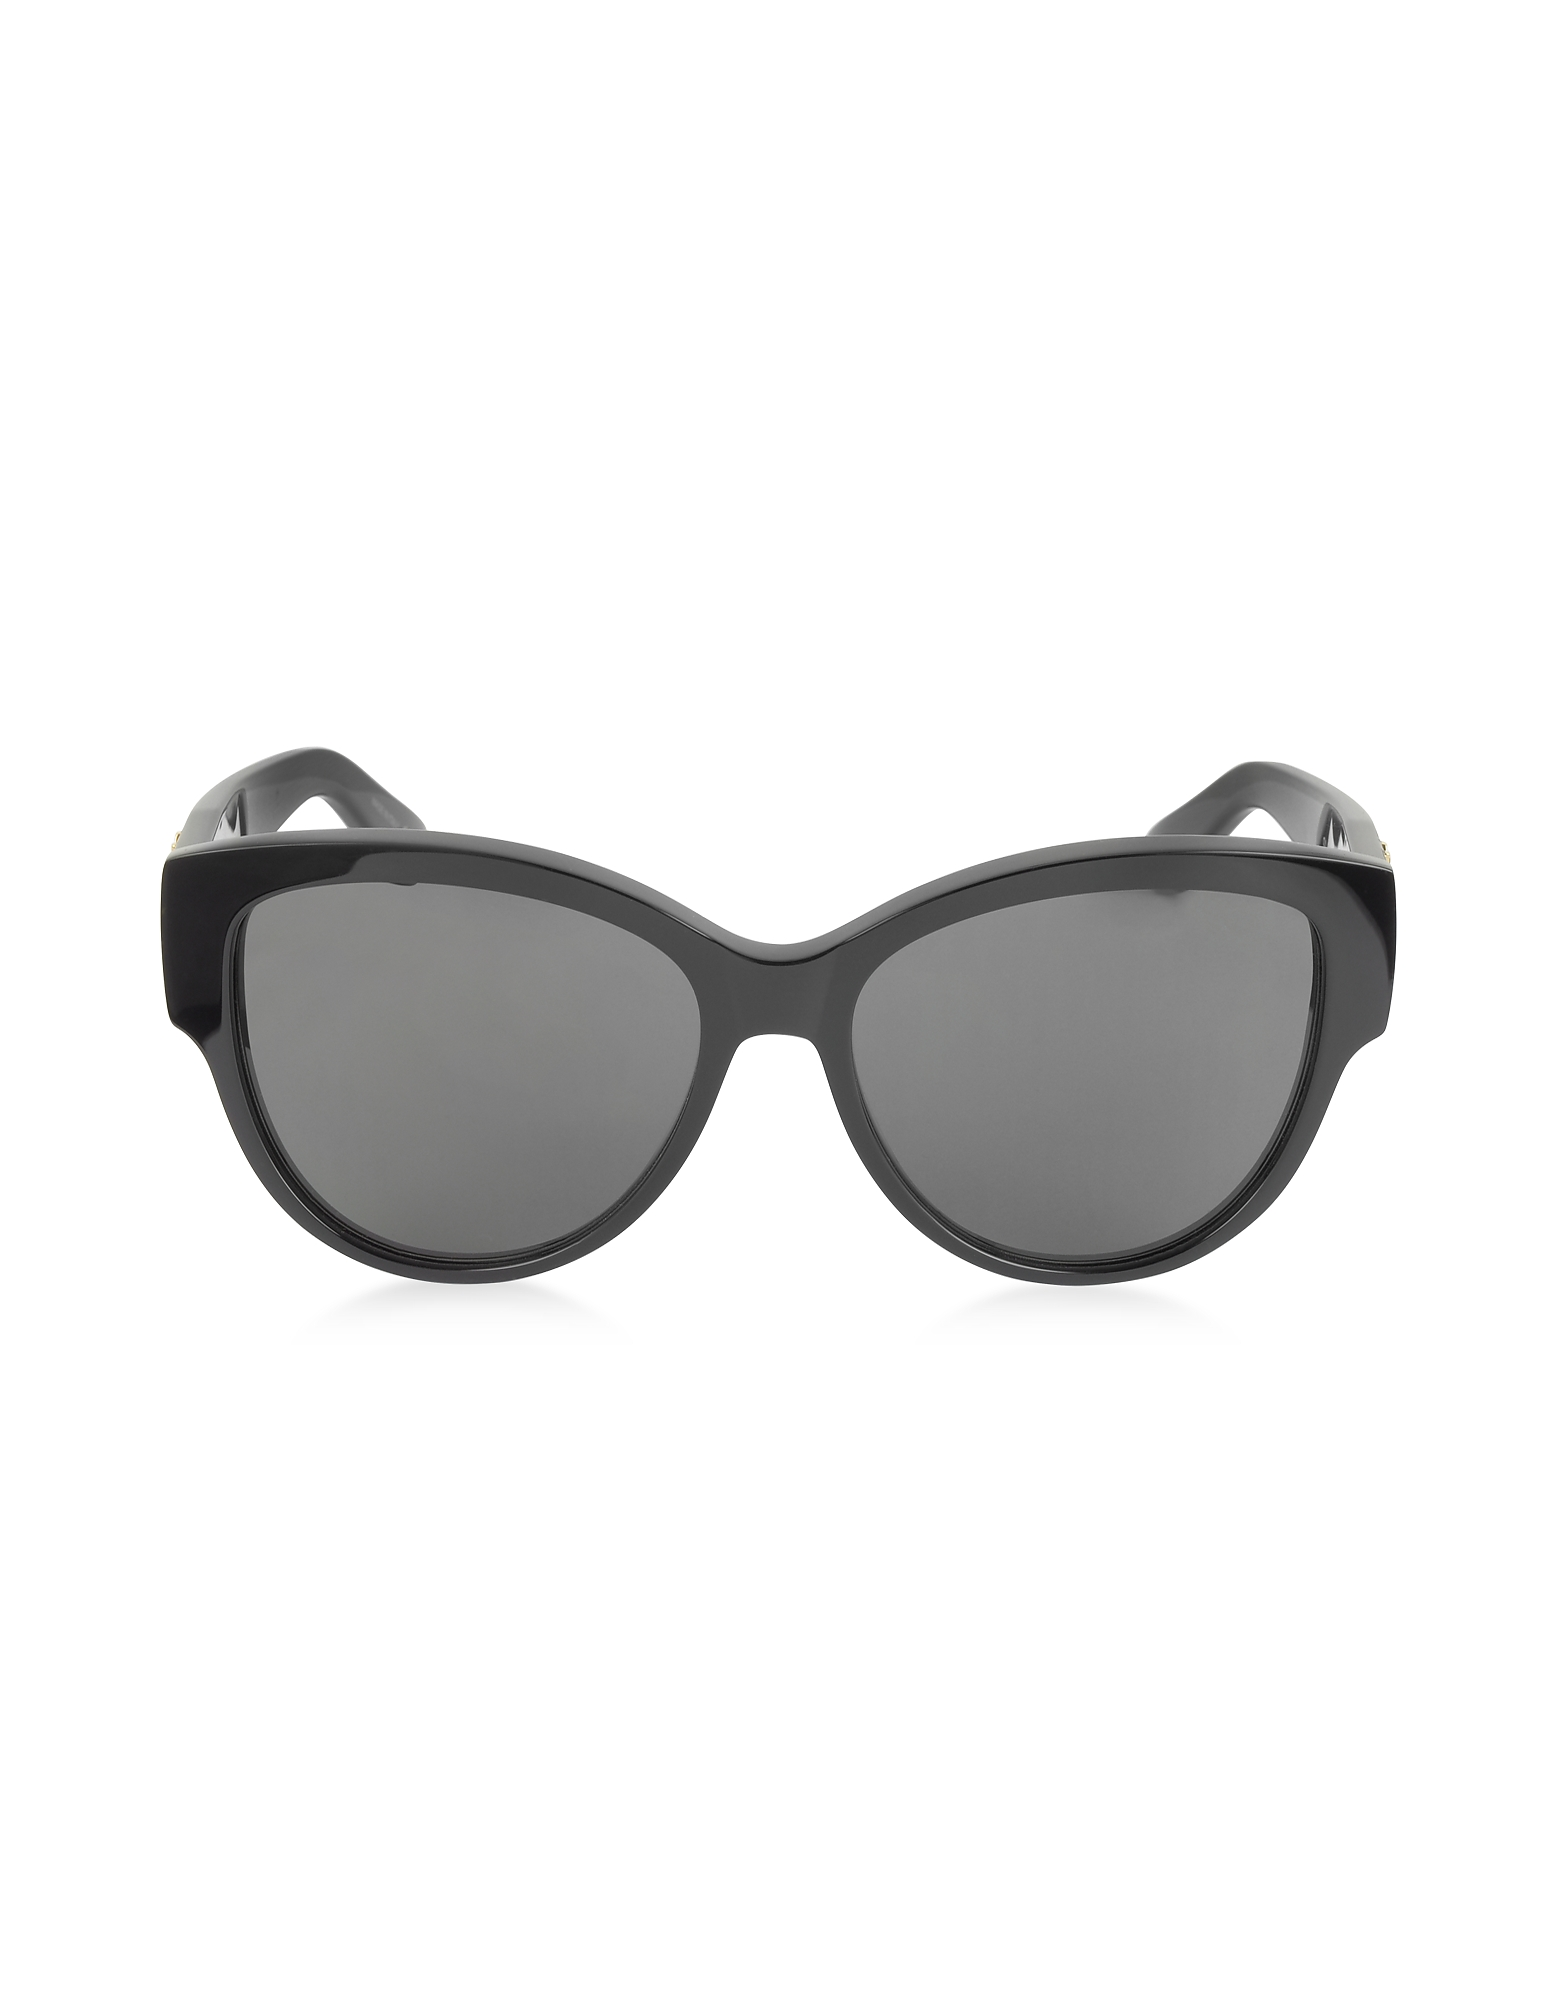 Saint Laurent Sunglasses, SL M3 002 Black Acetate Round Frame Women's Sunglasses